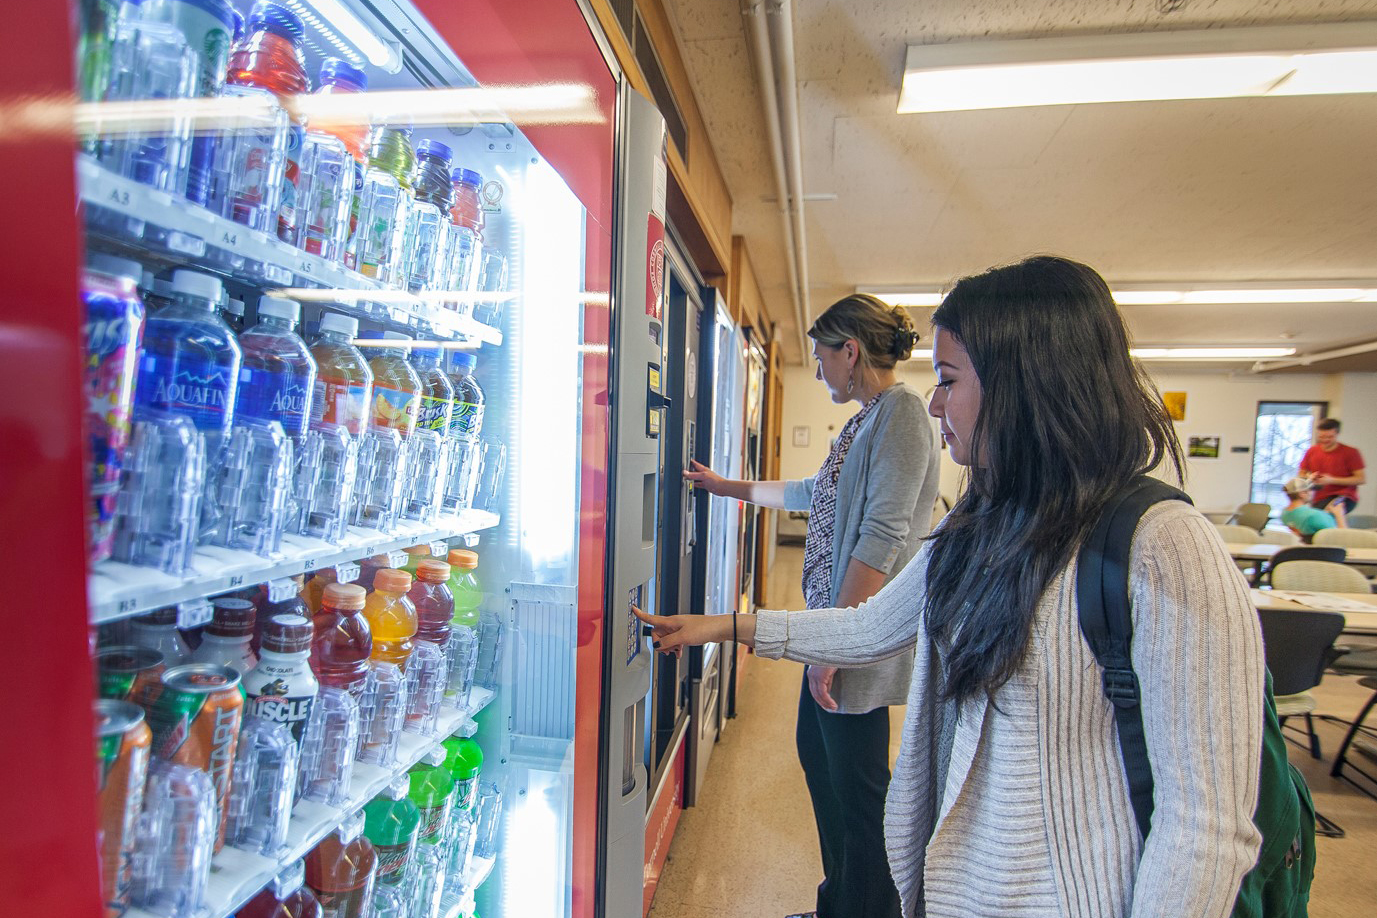 two women spend break time getting snacks and drinks from vending machines